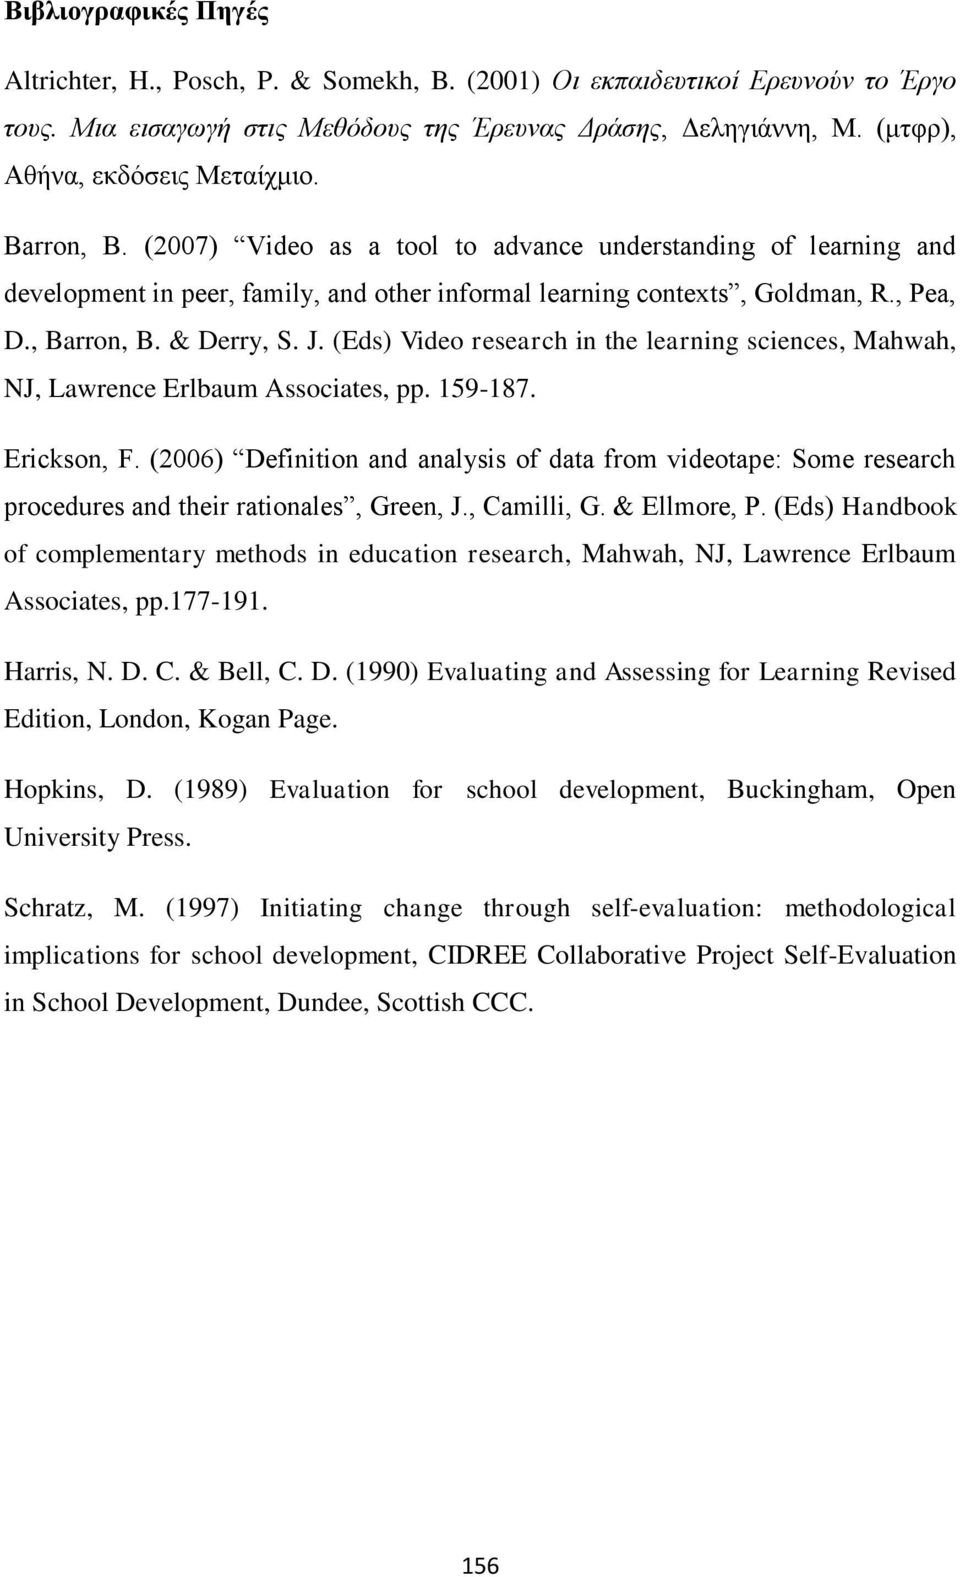 , Barron, B. & Derry, S. J. (Eds) Video research in the learning sciences, Mahwah, NJ, Lawrence Erlbaum Associates, pp. 159-187. Erickson, F.